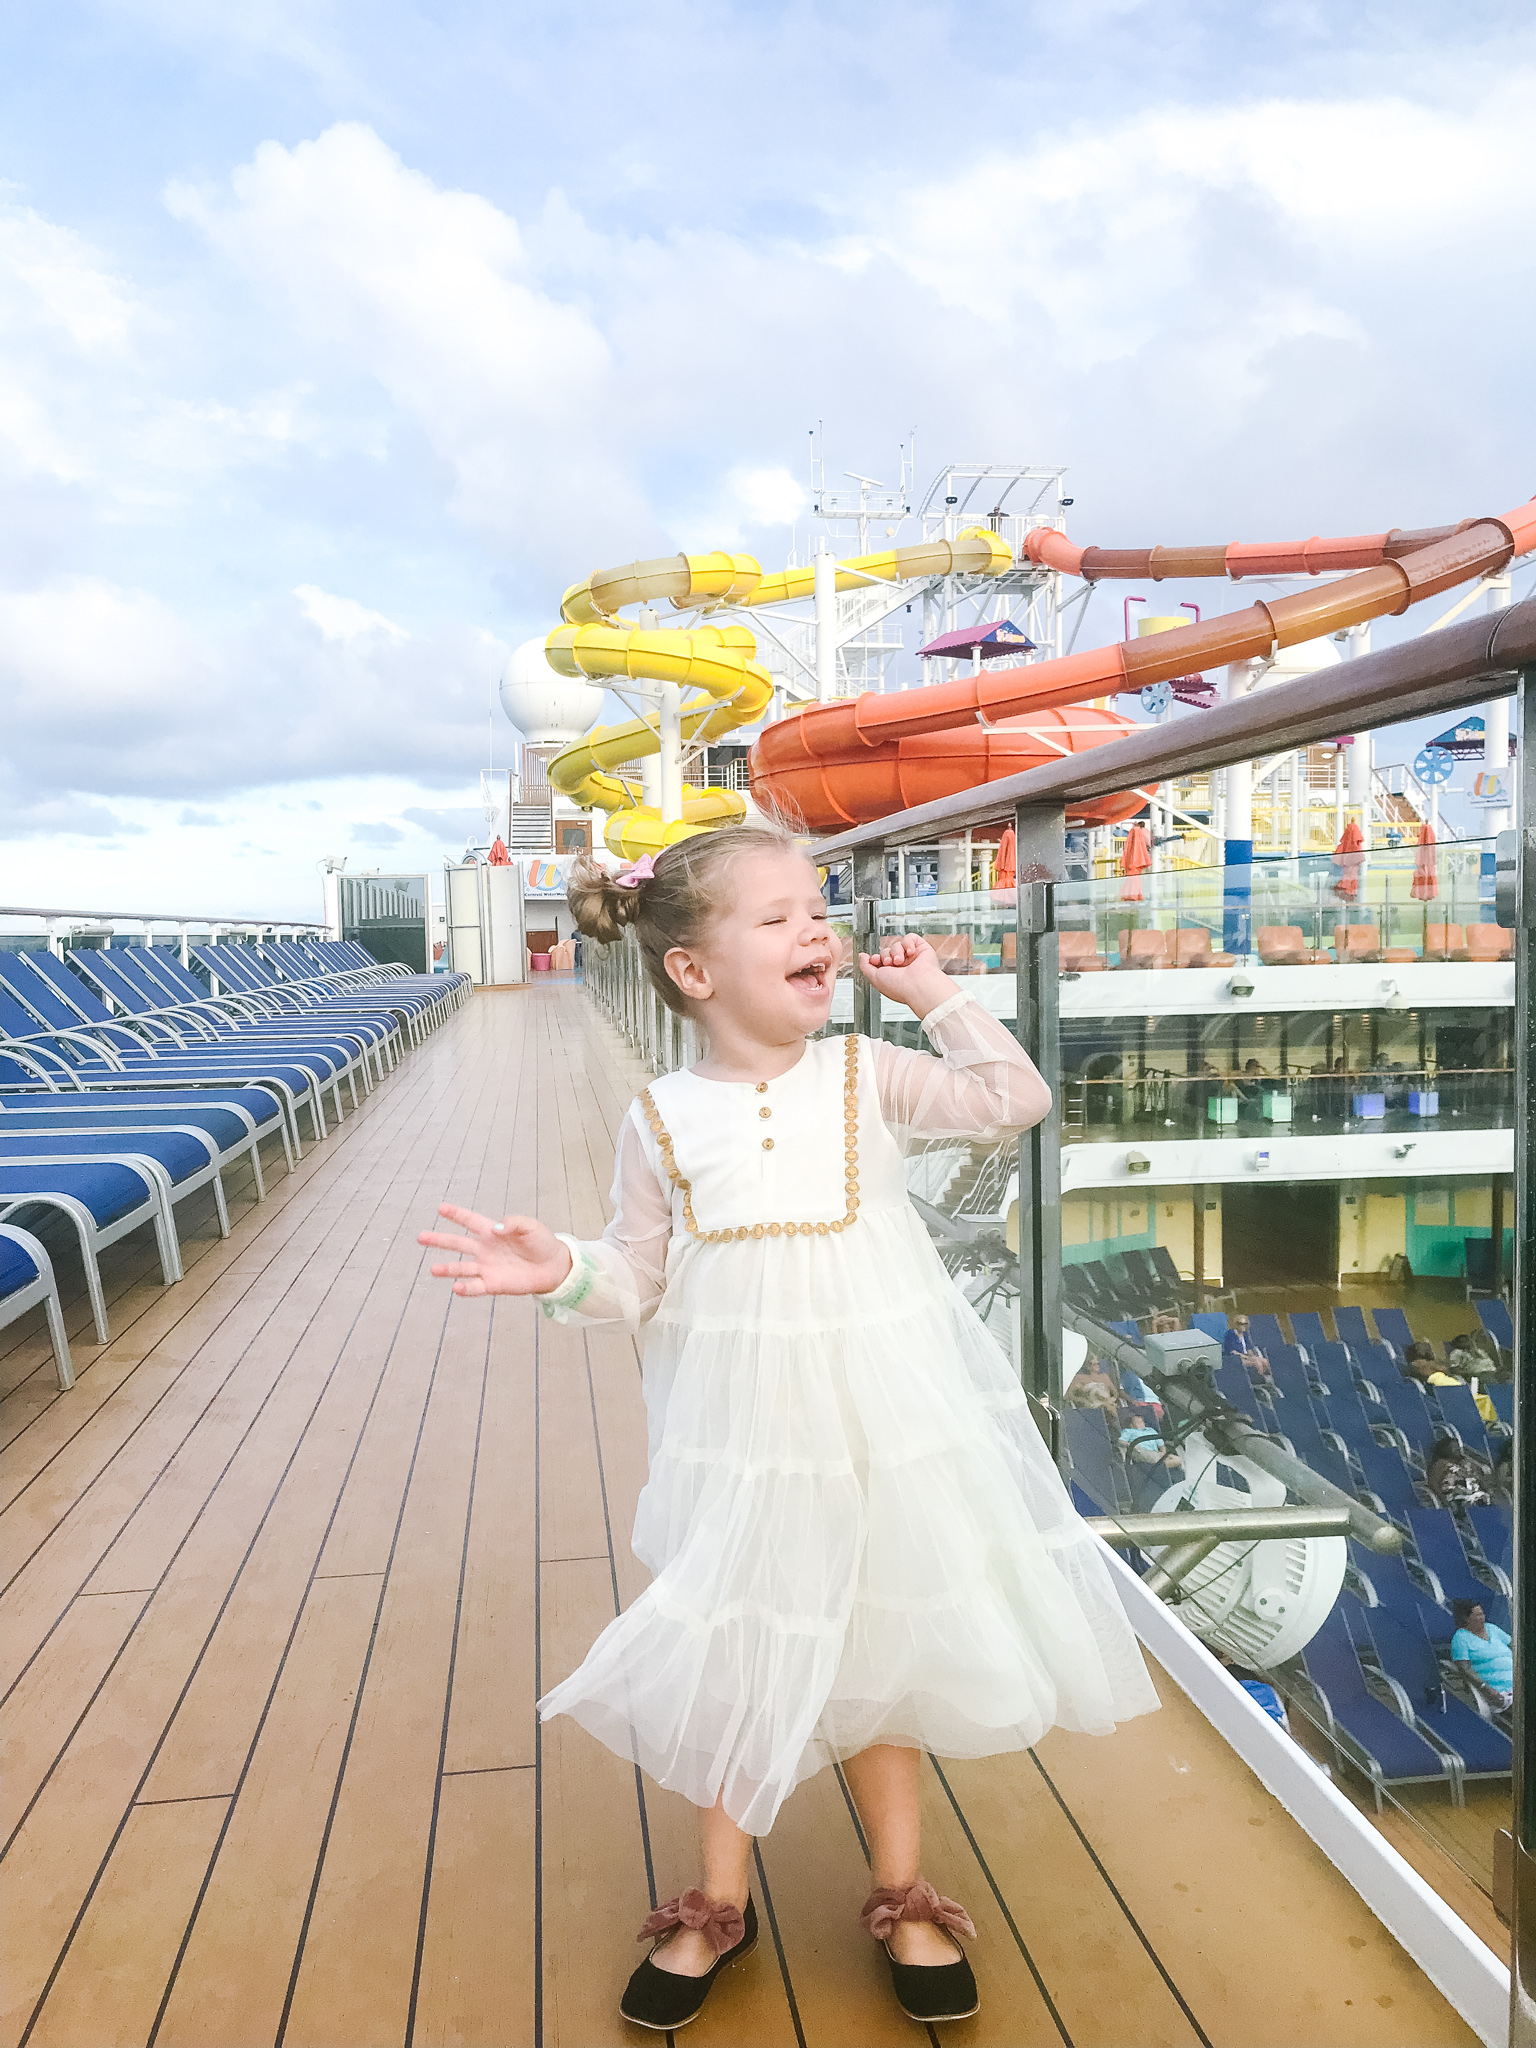 Carnival Breeze with kids